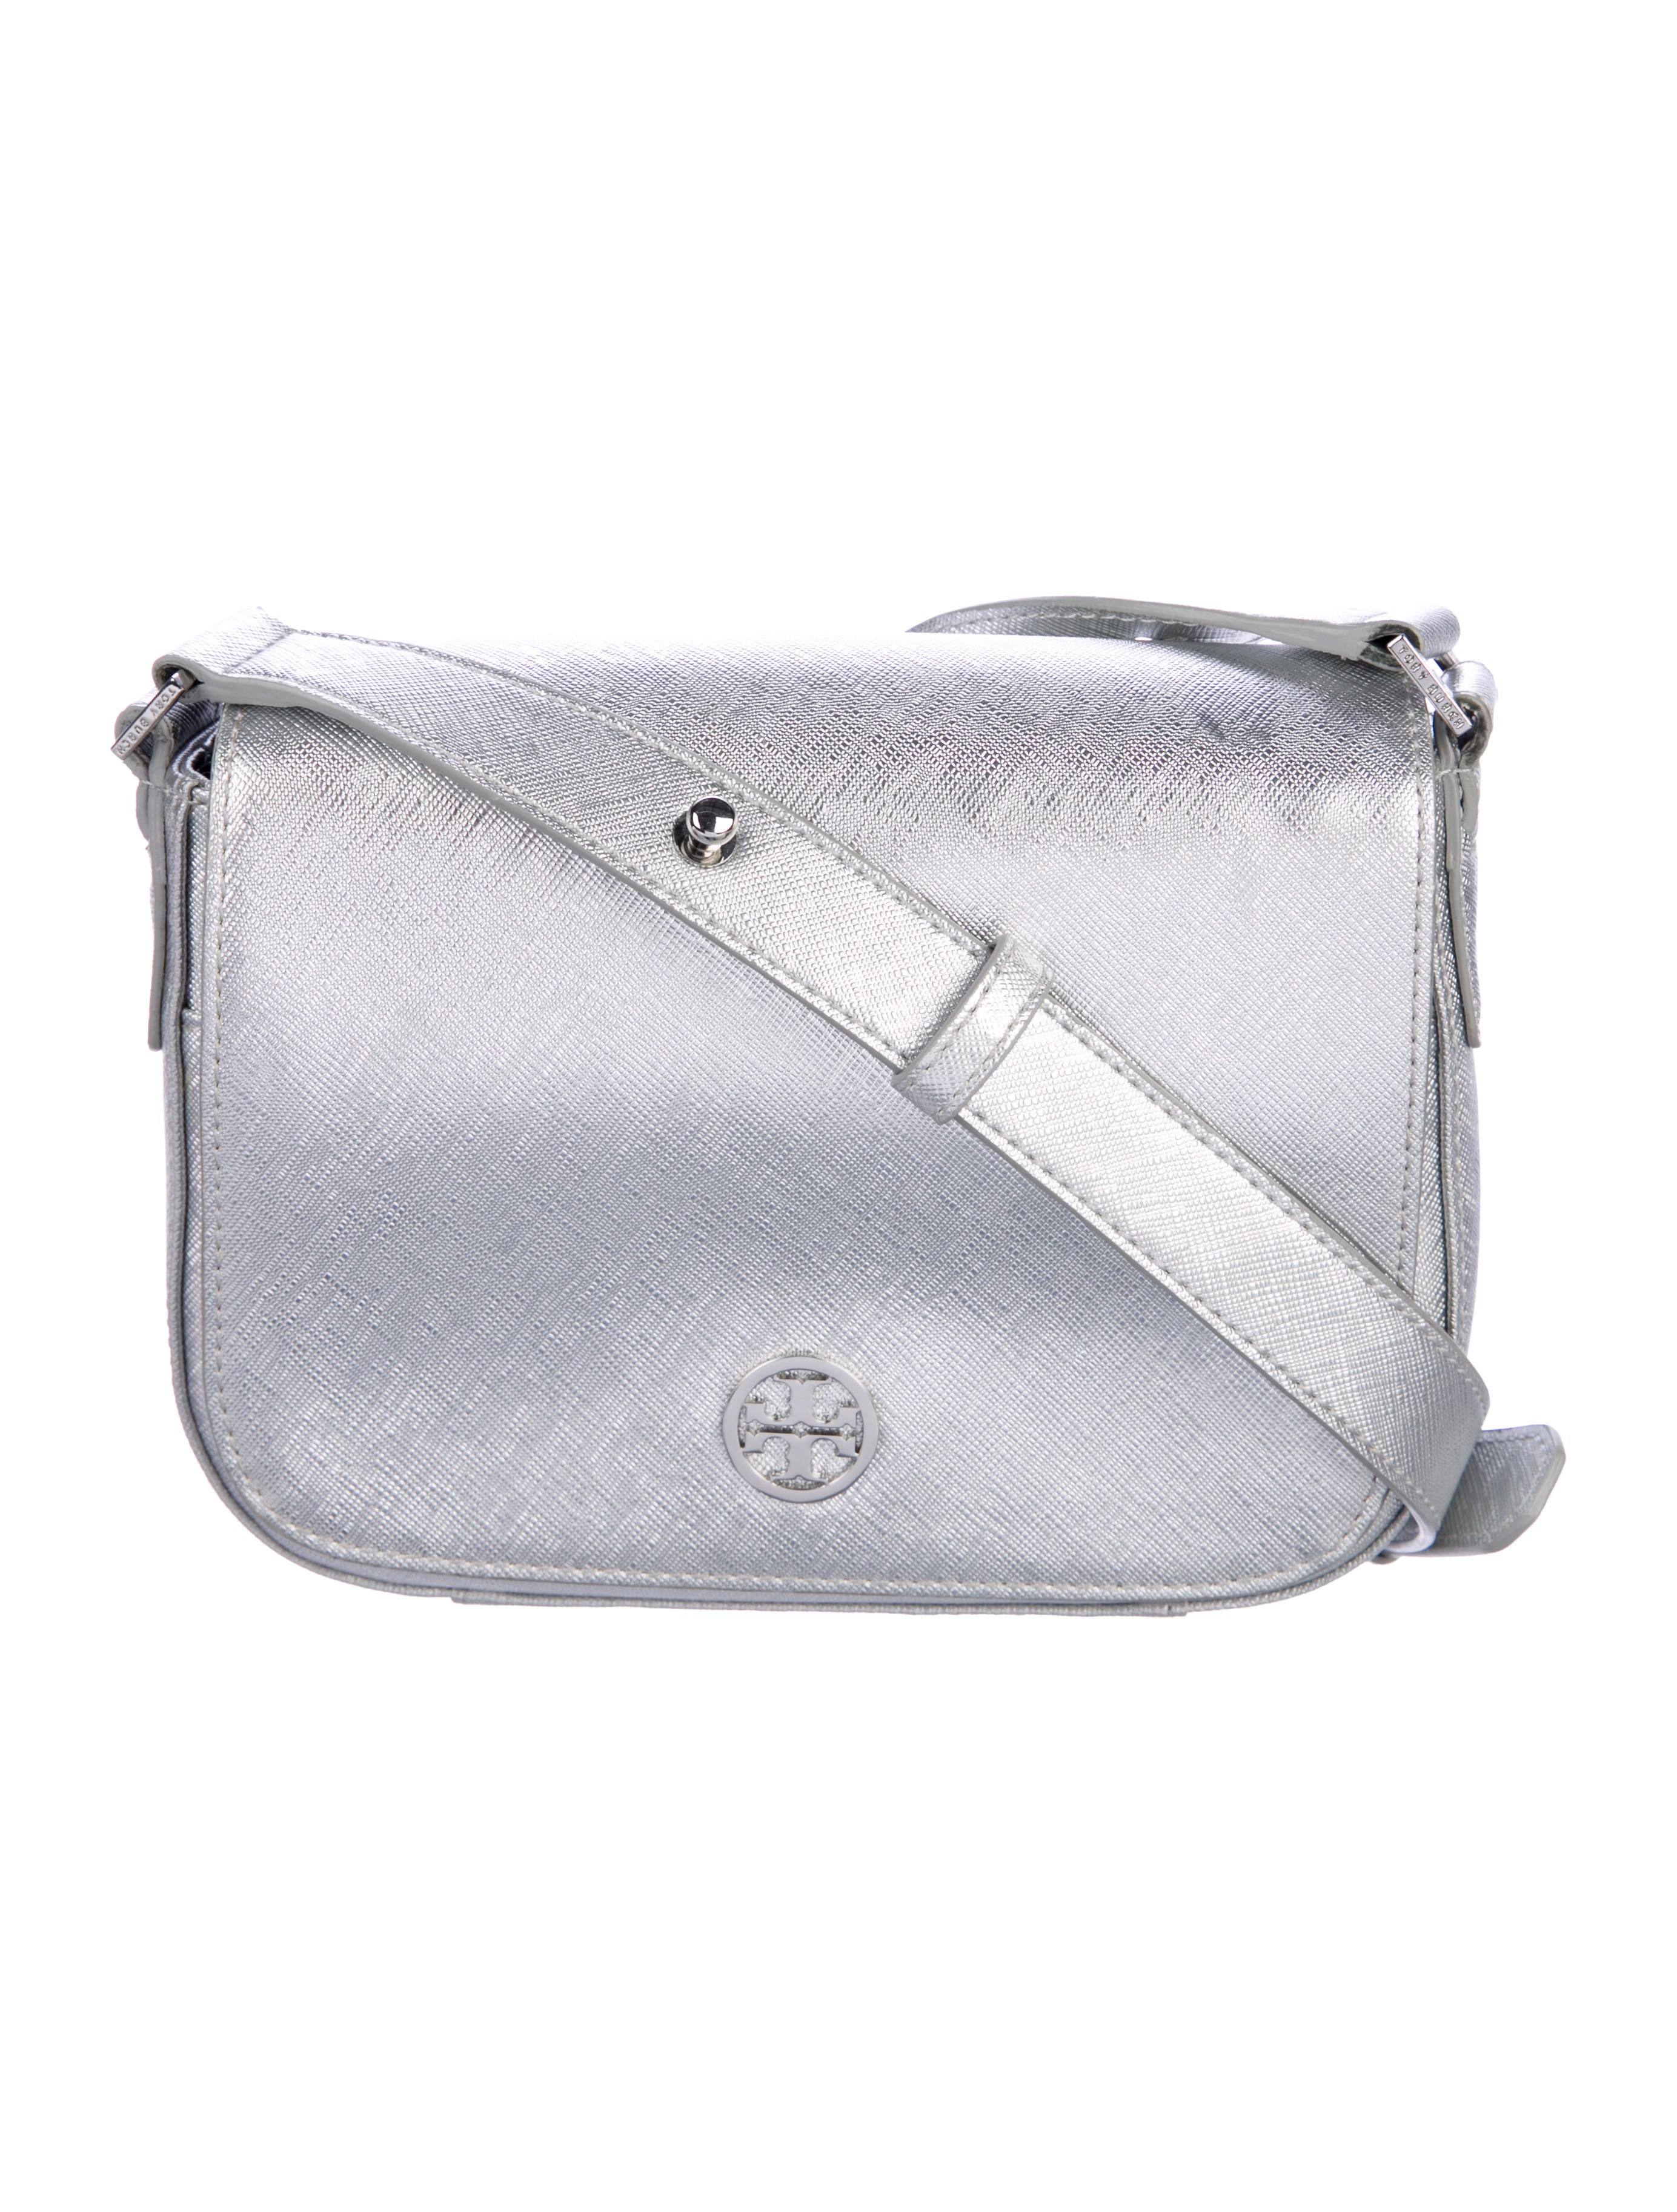 Luxury consignment sales. Shop for pre-owned designer handbags ...